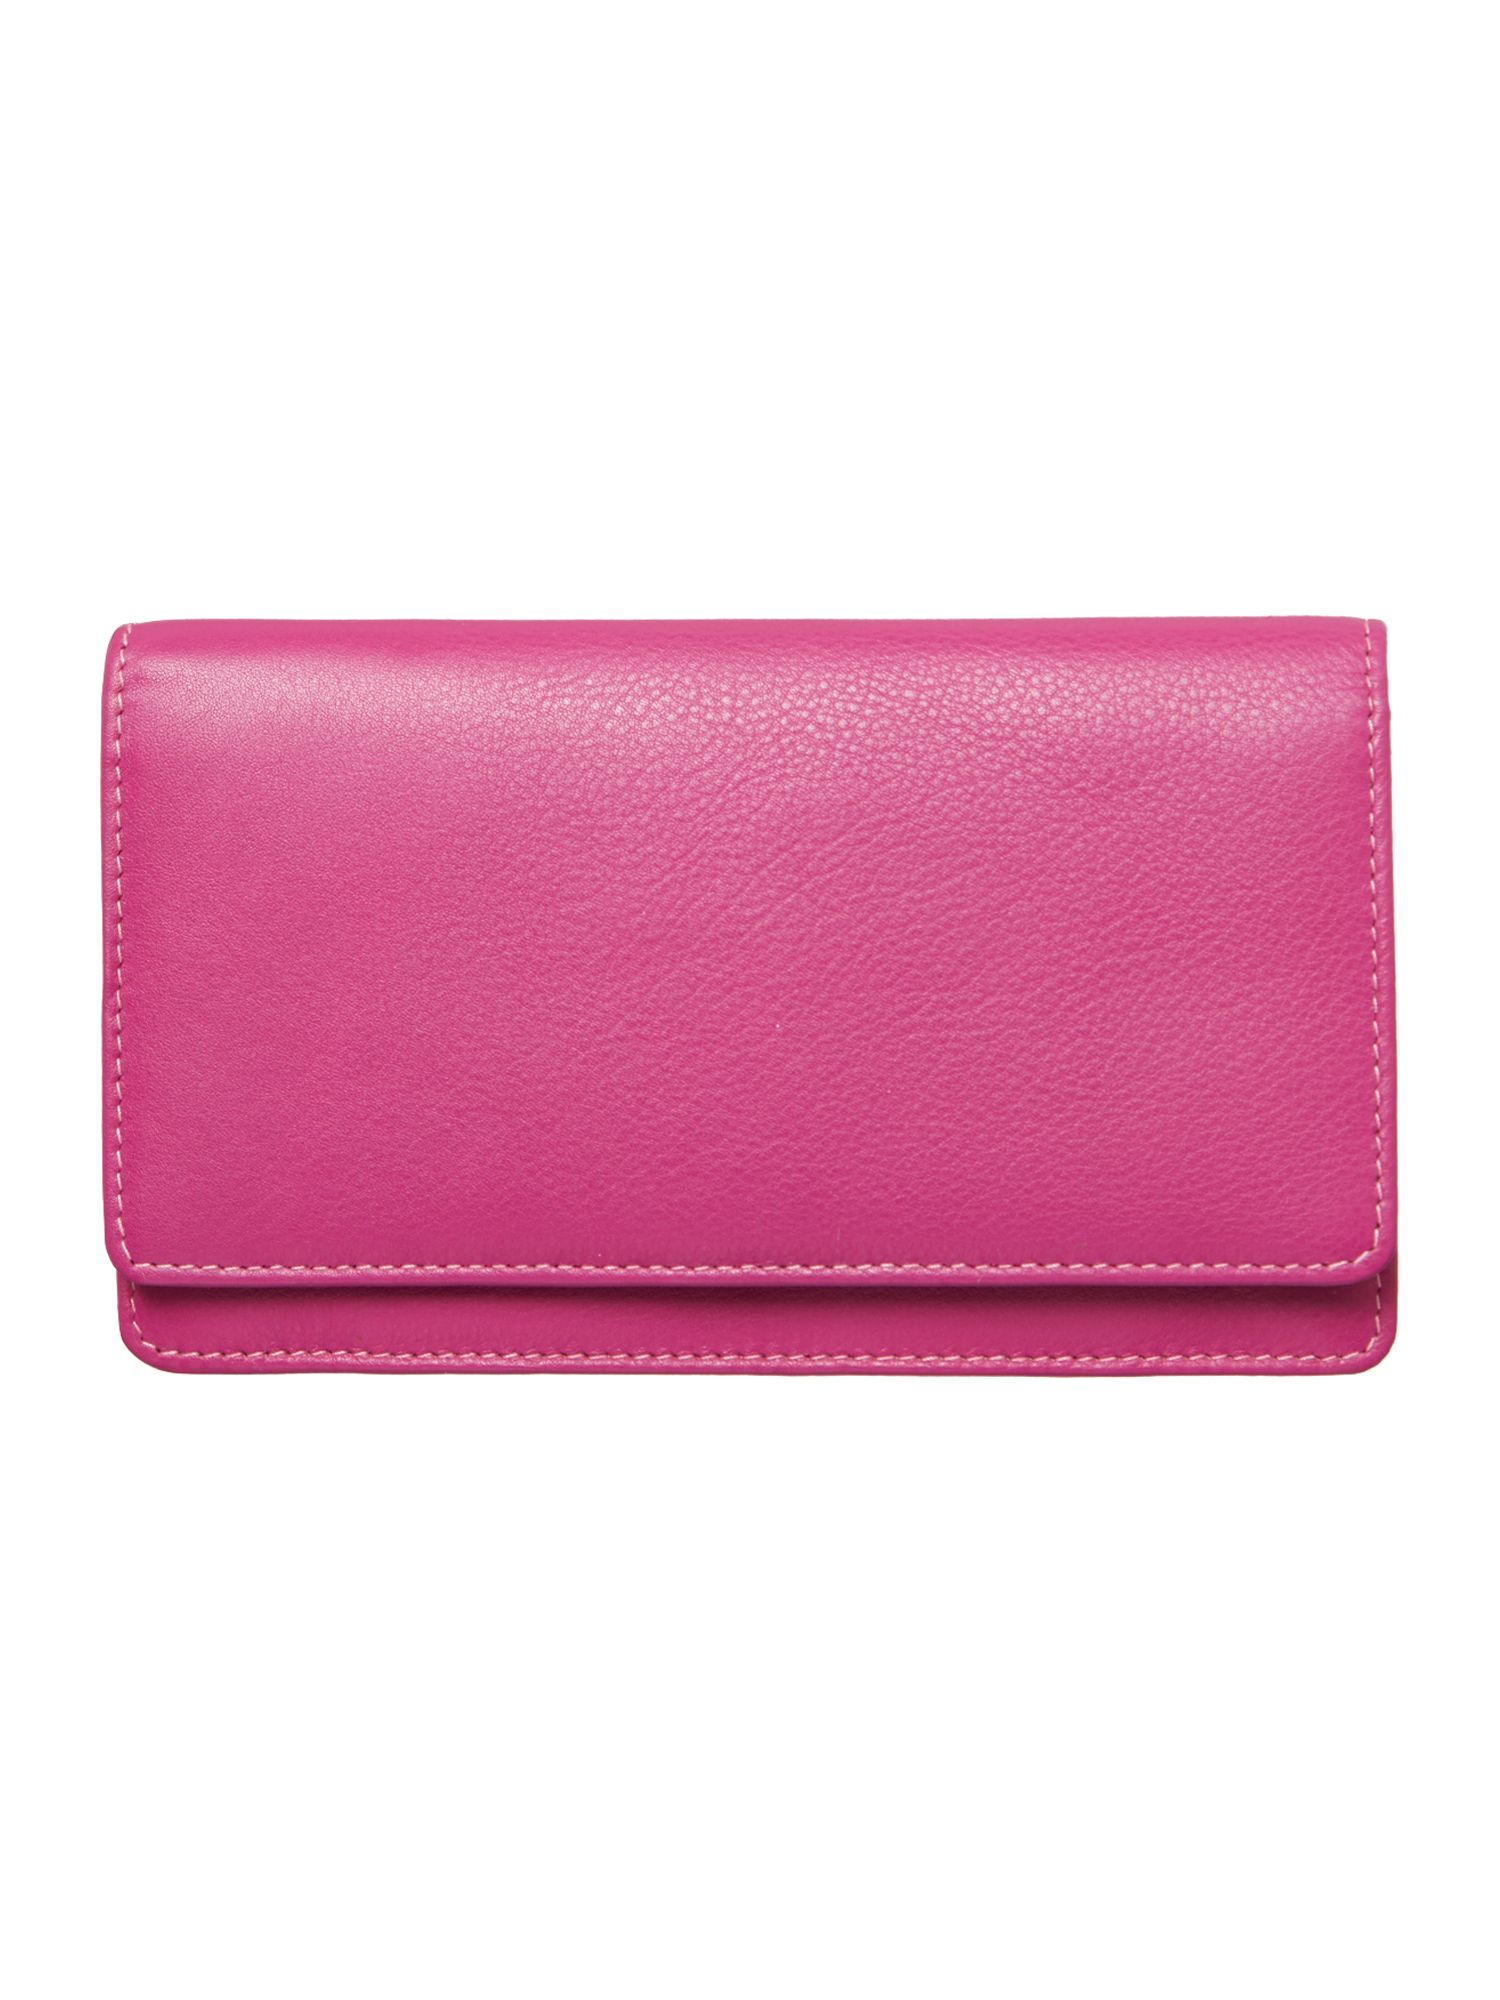 Pink with spot internal large flapover purse